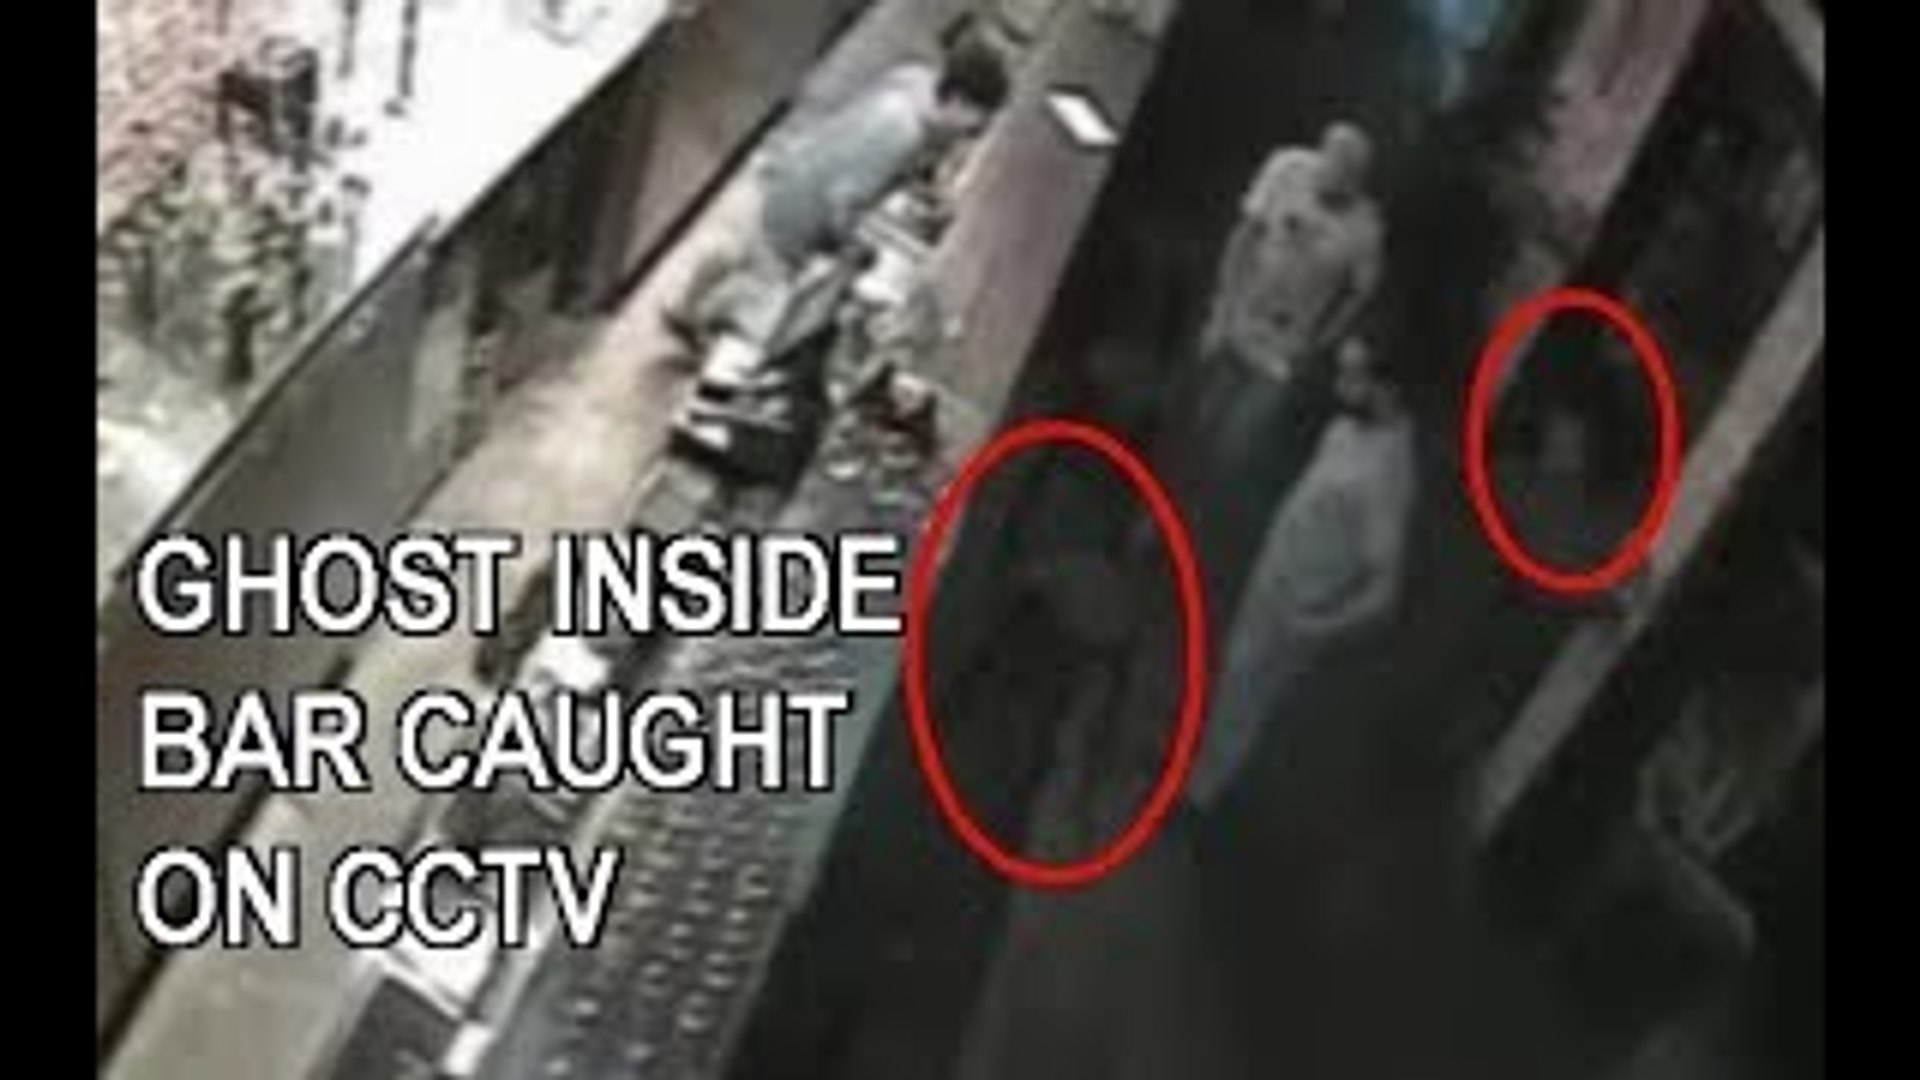 GHOST INSIDE BAR IN SINGAPORE CAUGHT ON CCTV